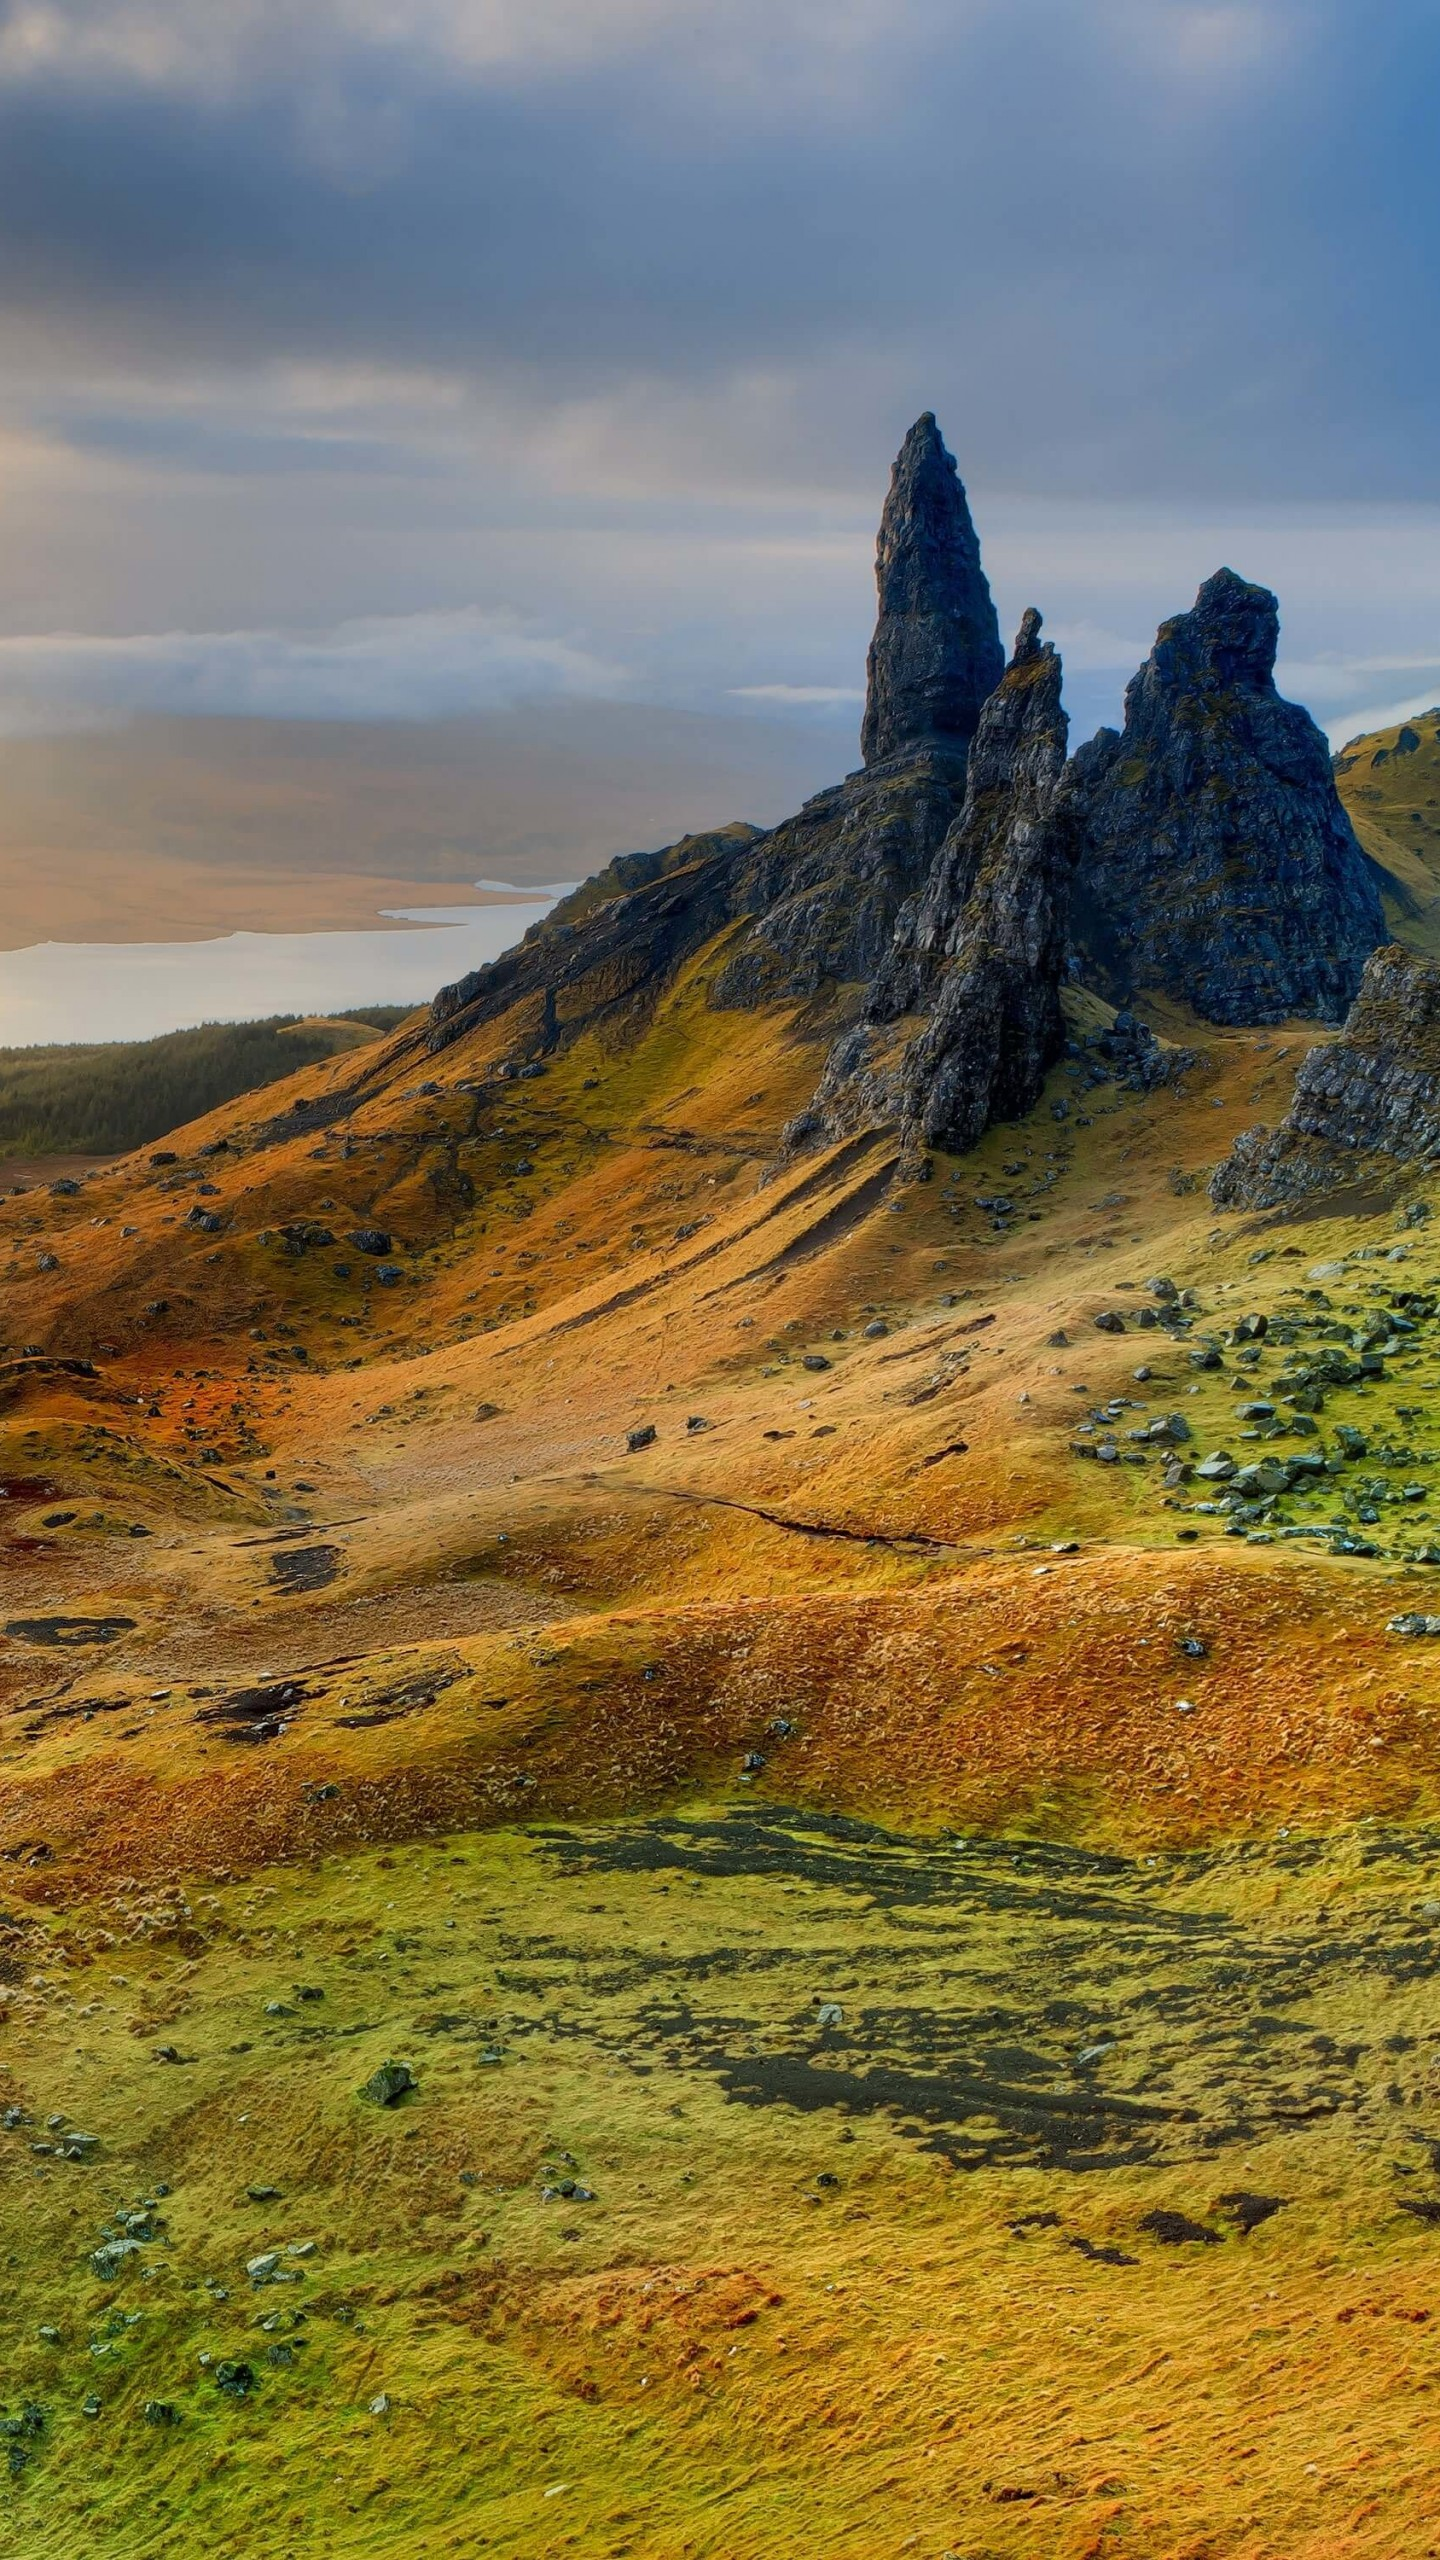 The Old Man of Storr, Isle of Skye, Scotland Wallpaper for SAMSUNG Galaxy Note 4